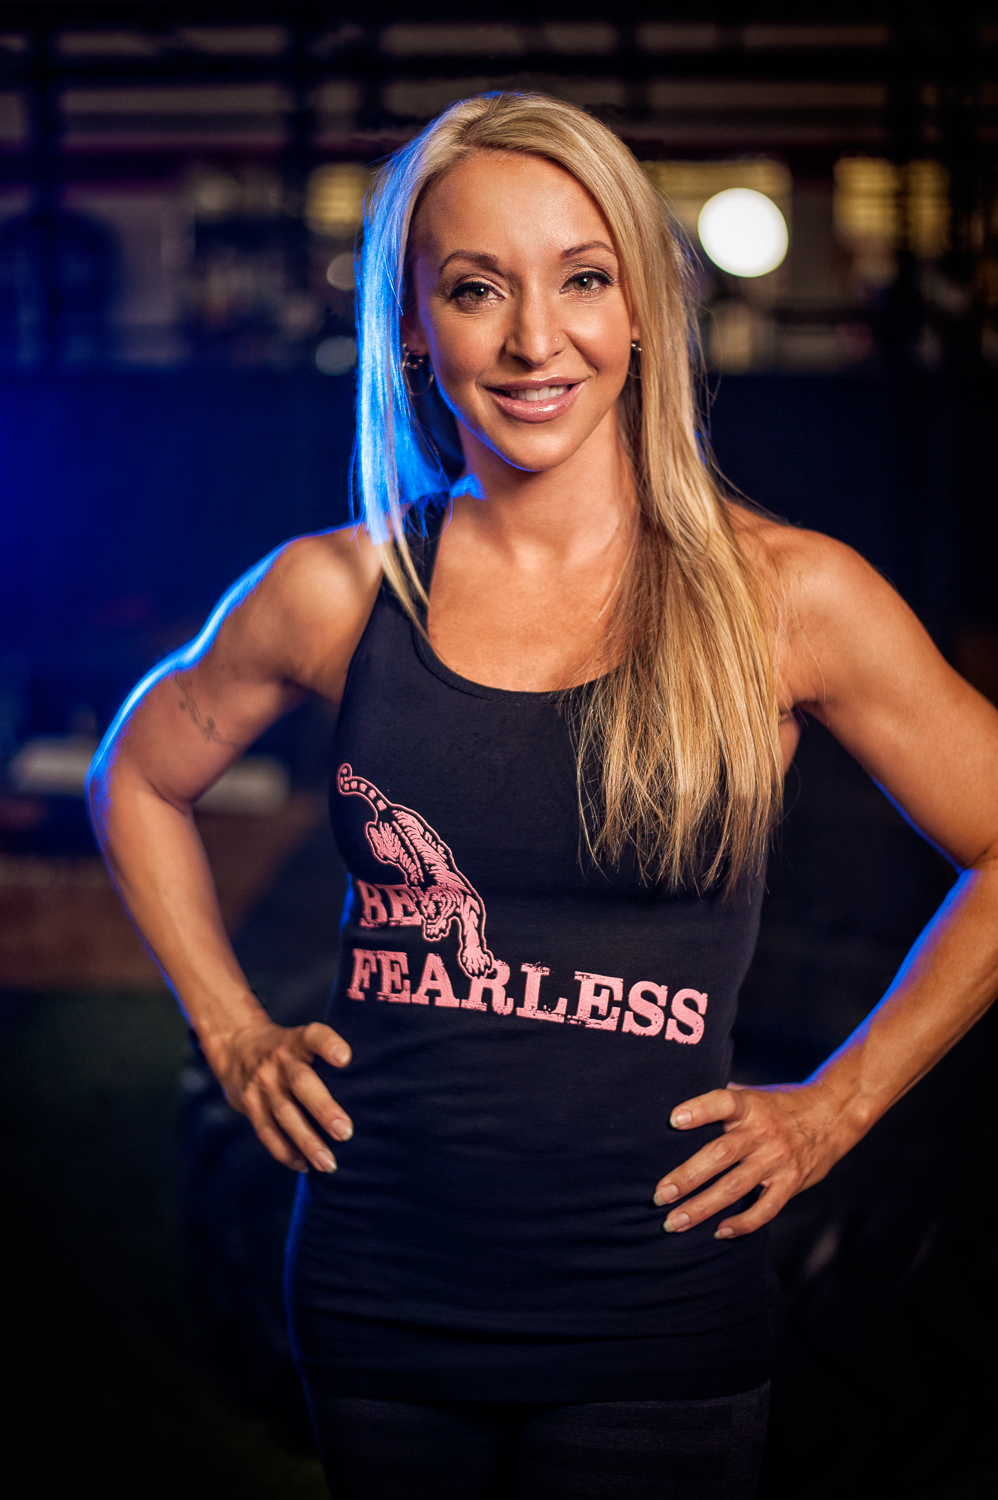 Hamilton Toronto Fitness Photographer - Metamorfose Clothing Line Be Fearless Tanktop by Marek Michalek.jpg